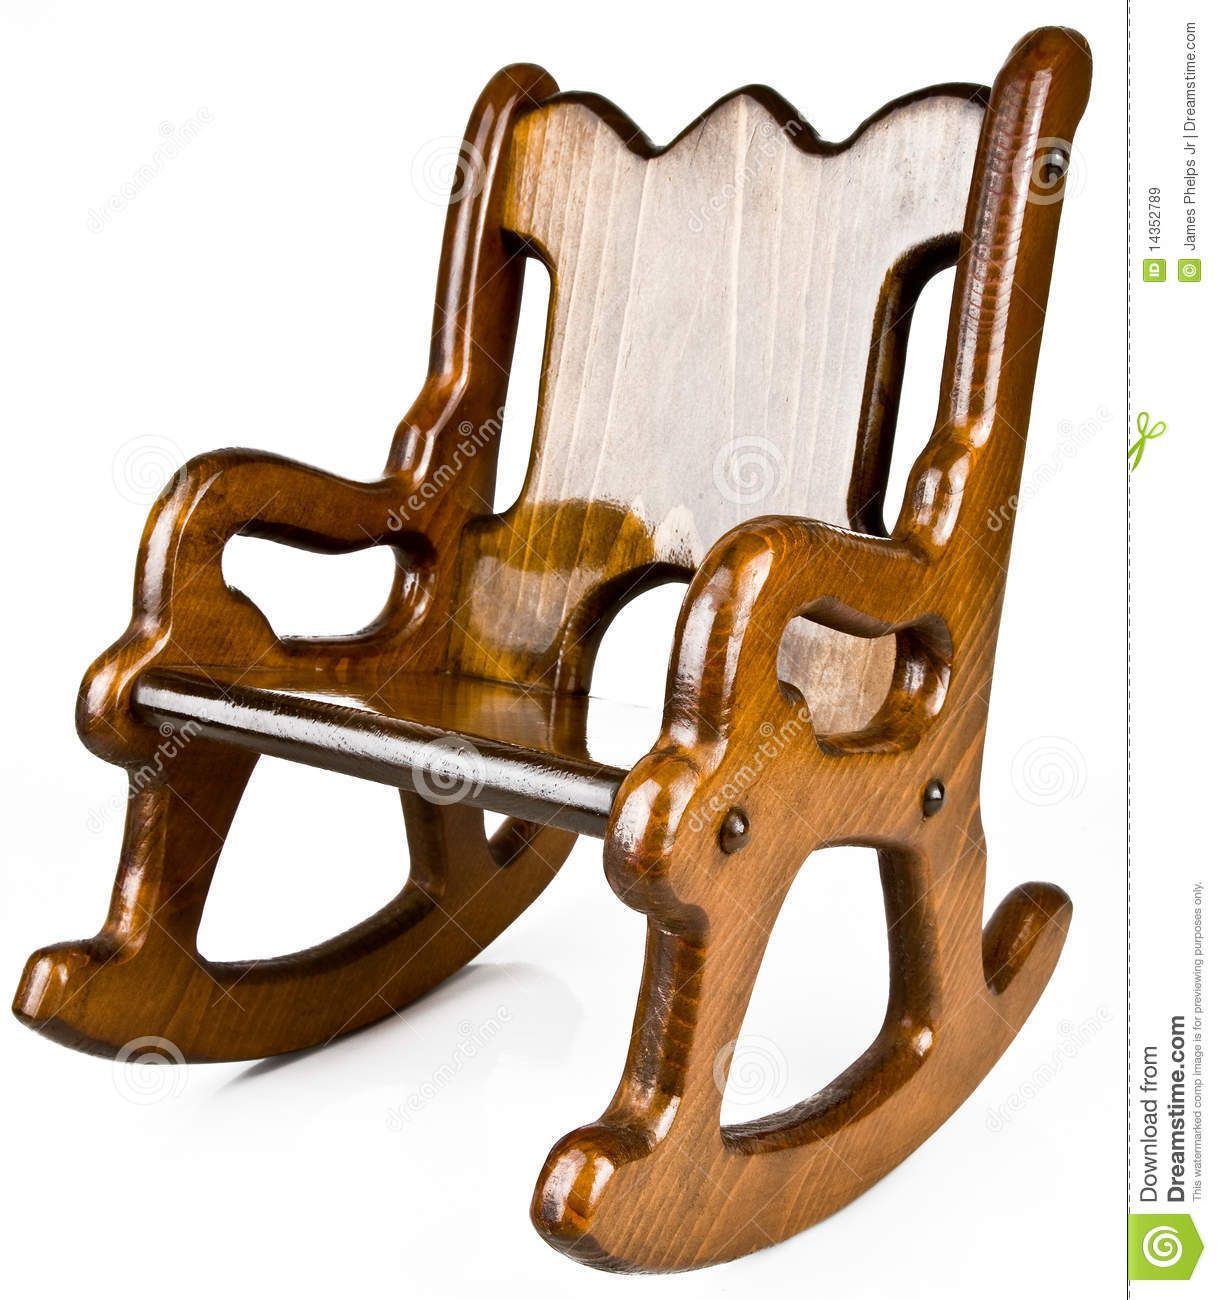 Kids Wooden Chair Kids Wood Rocking Chair Plans Wood Rocking Chair Plans